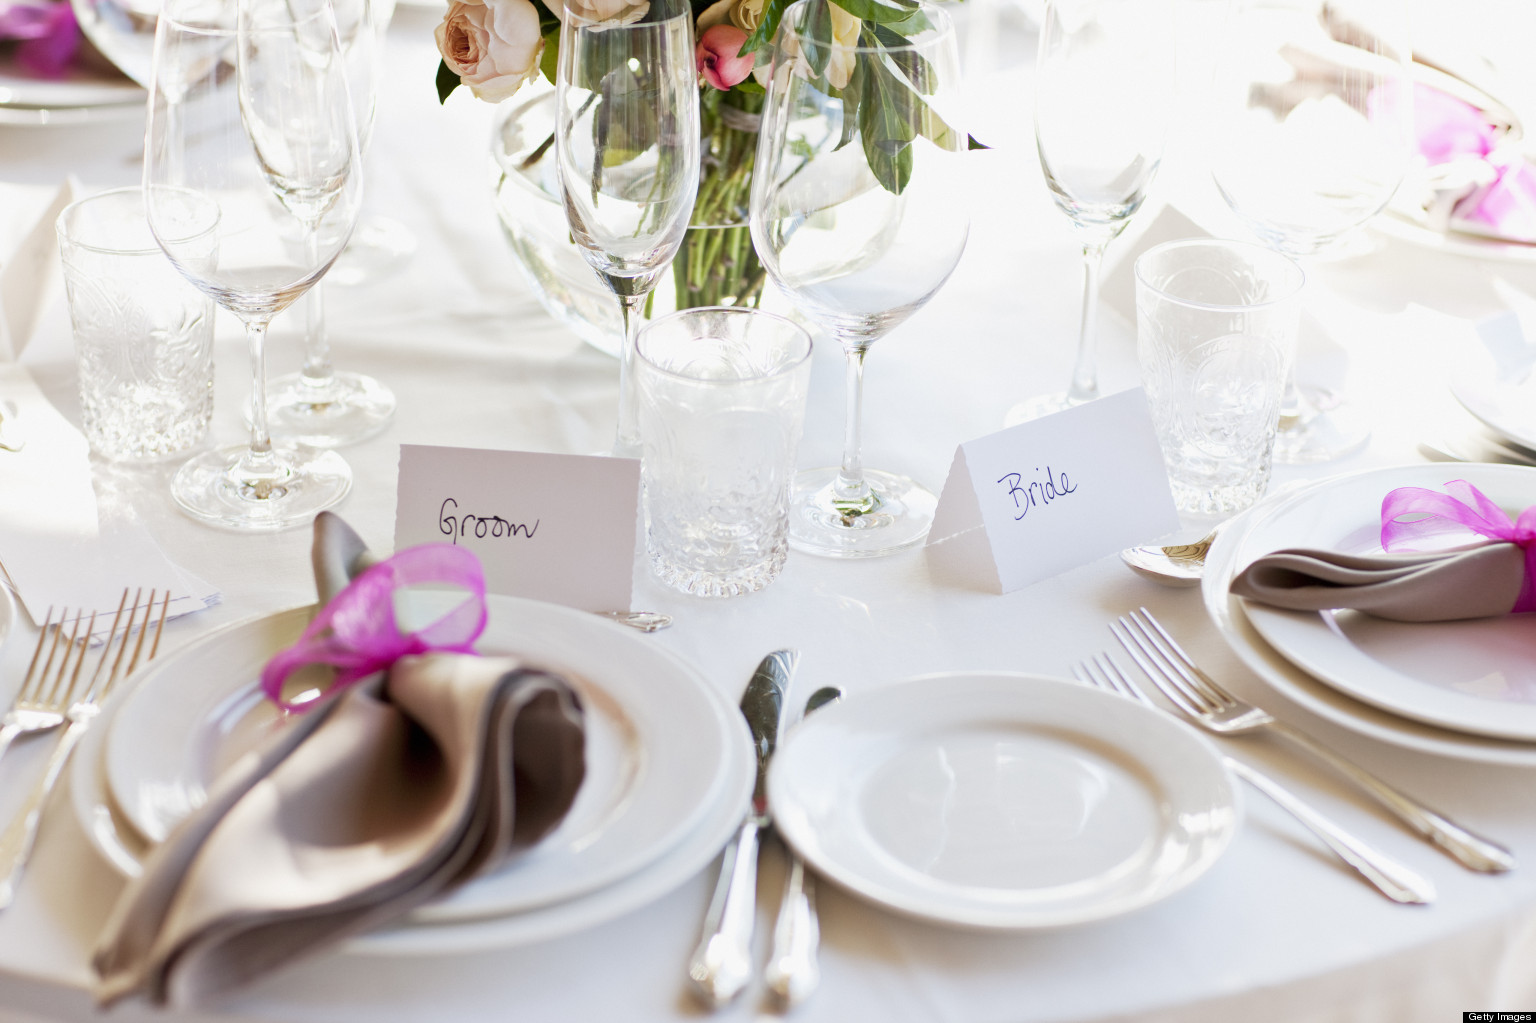 How catering works at a destination wedding a bridal etiquette how catering works at a destination wedding a bridal etiquette primer huffpost junglespirit Choice Image